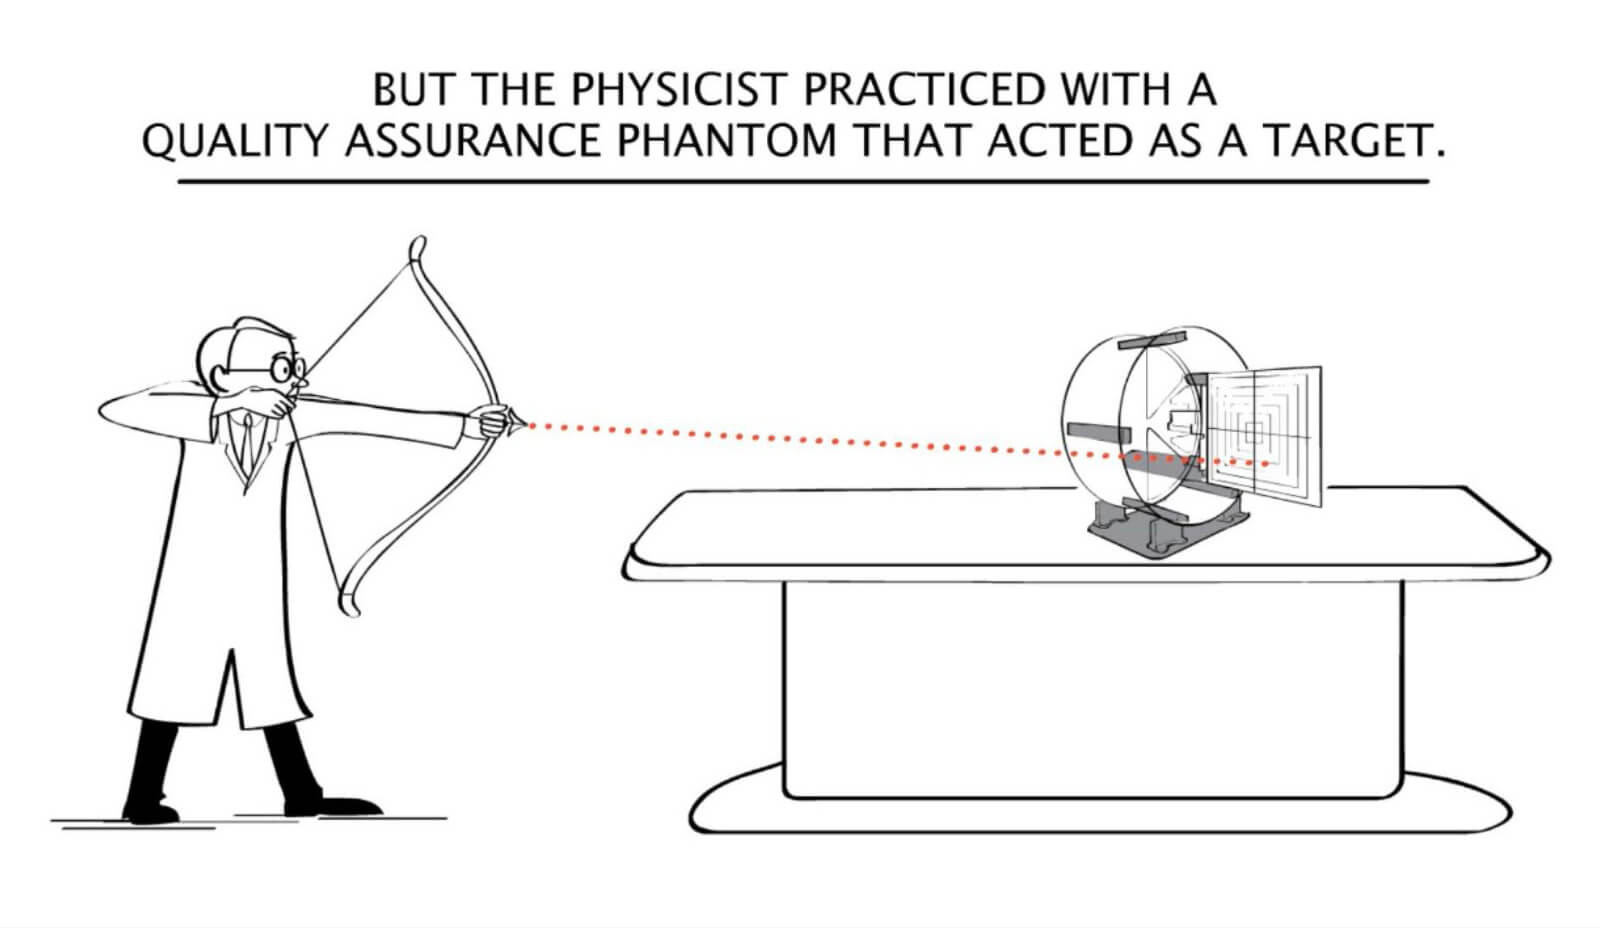 But the physicist practiced with a quality assurance phantom that acted as a target.